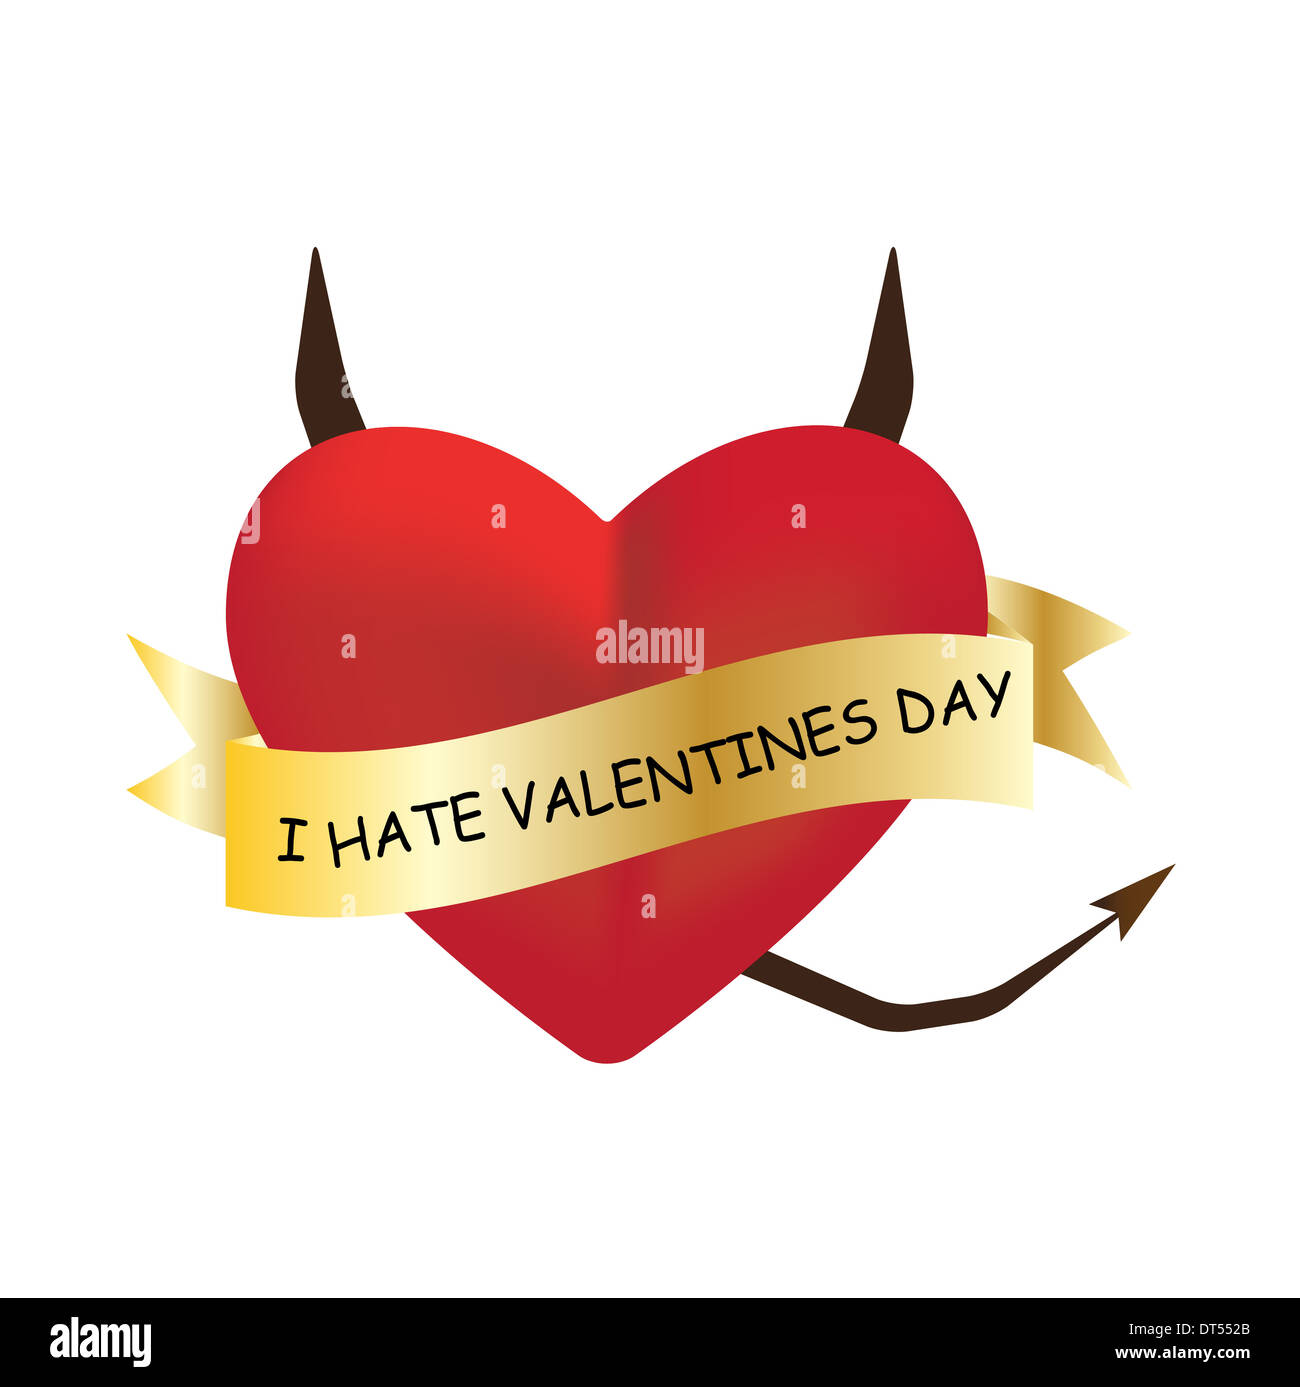 I Hate Valentines Day Text On Heart Vector Illustration Stock Photo